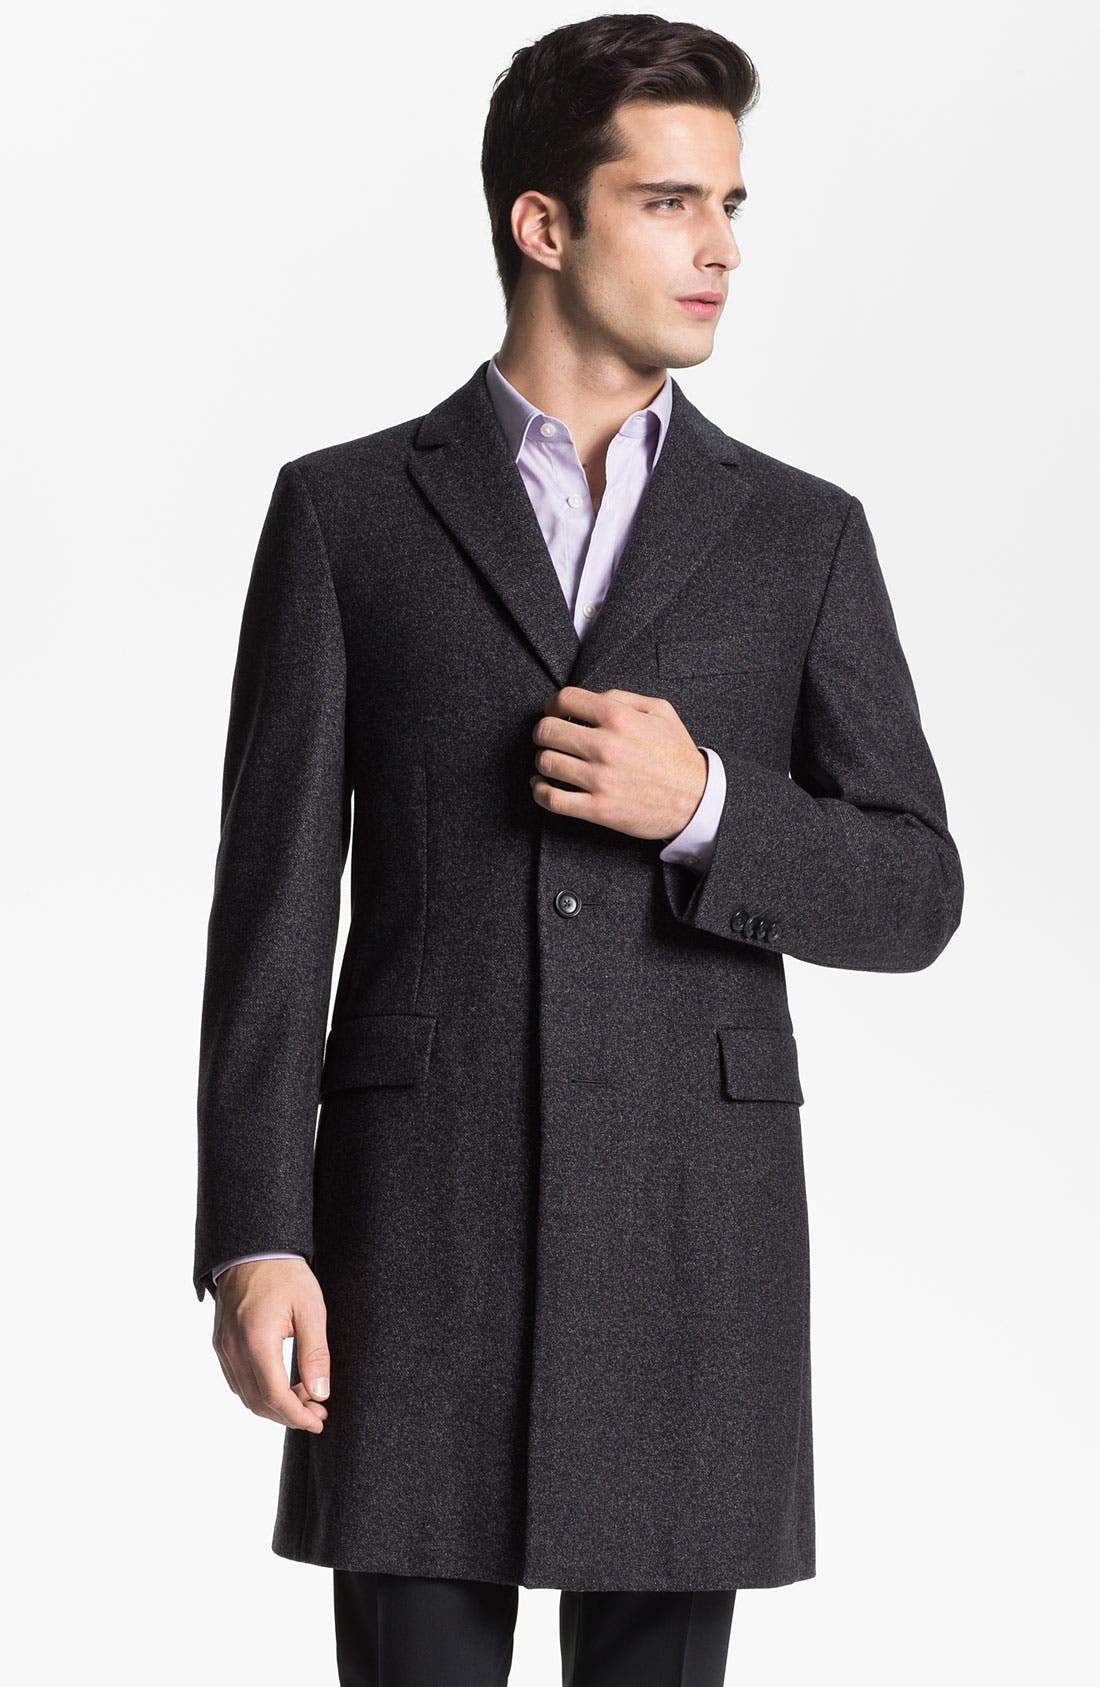 Main Image - Z Zegna 'Vintage Granite' Wool Top Coat